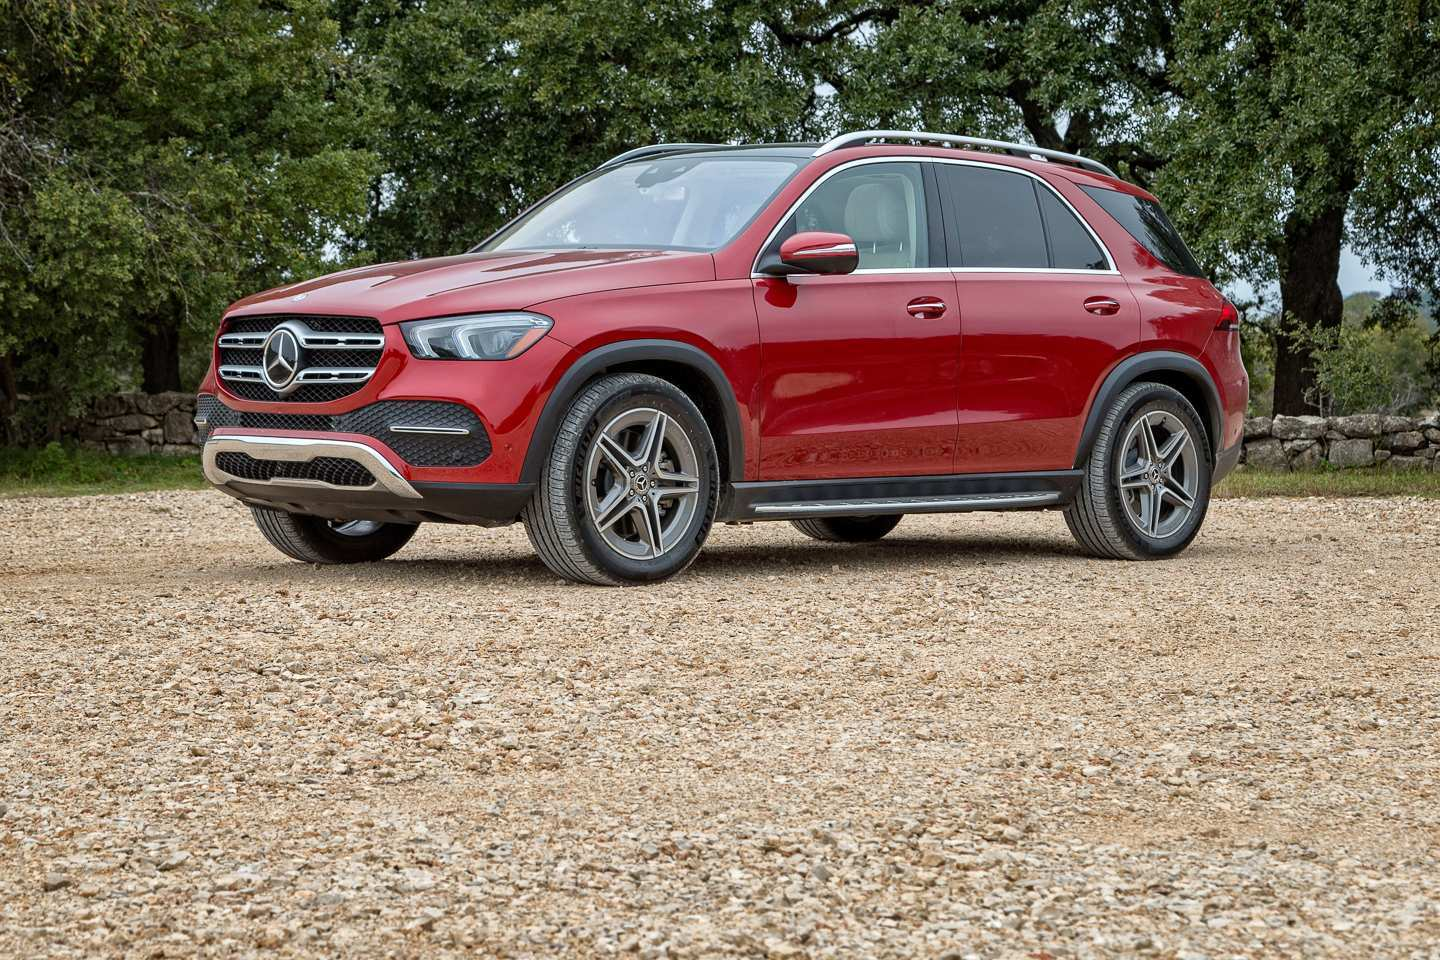 51 All New Gle Mercedes 2019 Prices